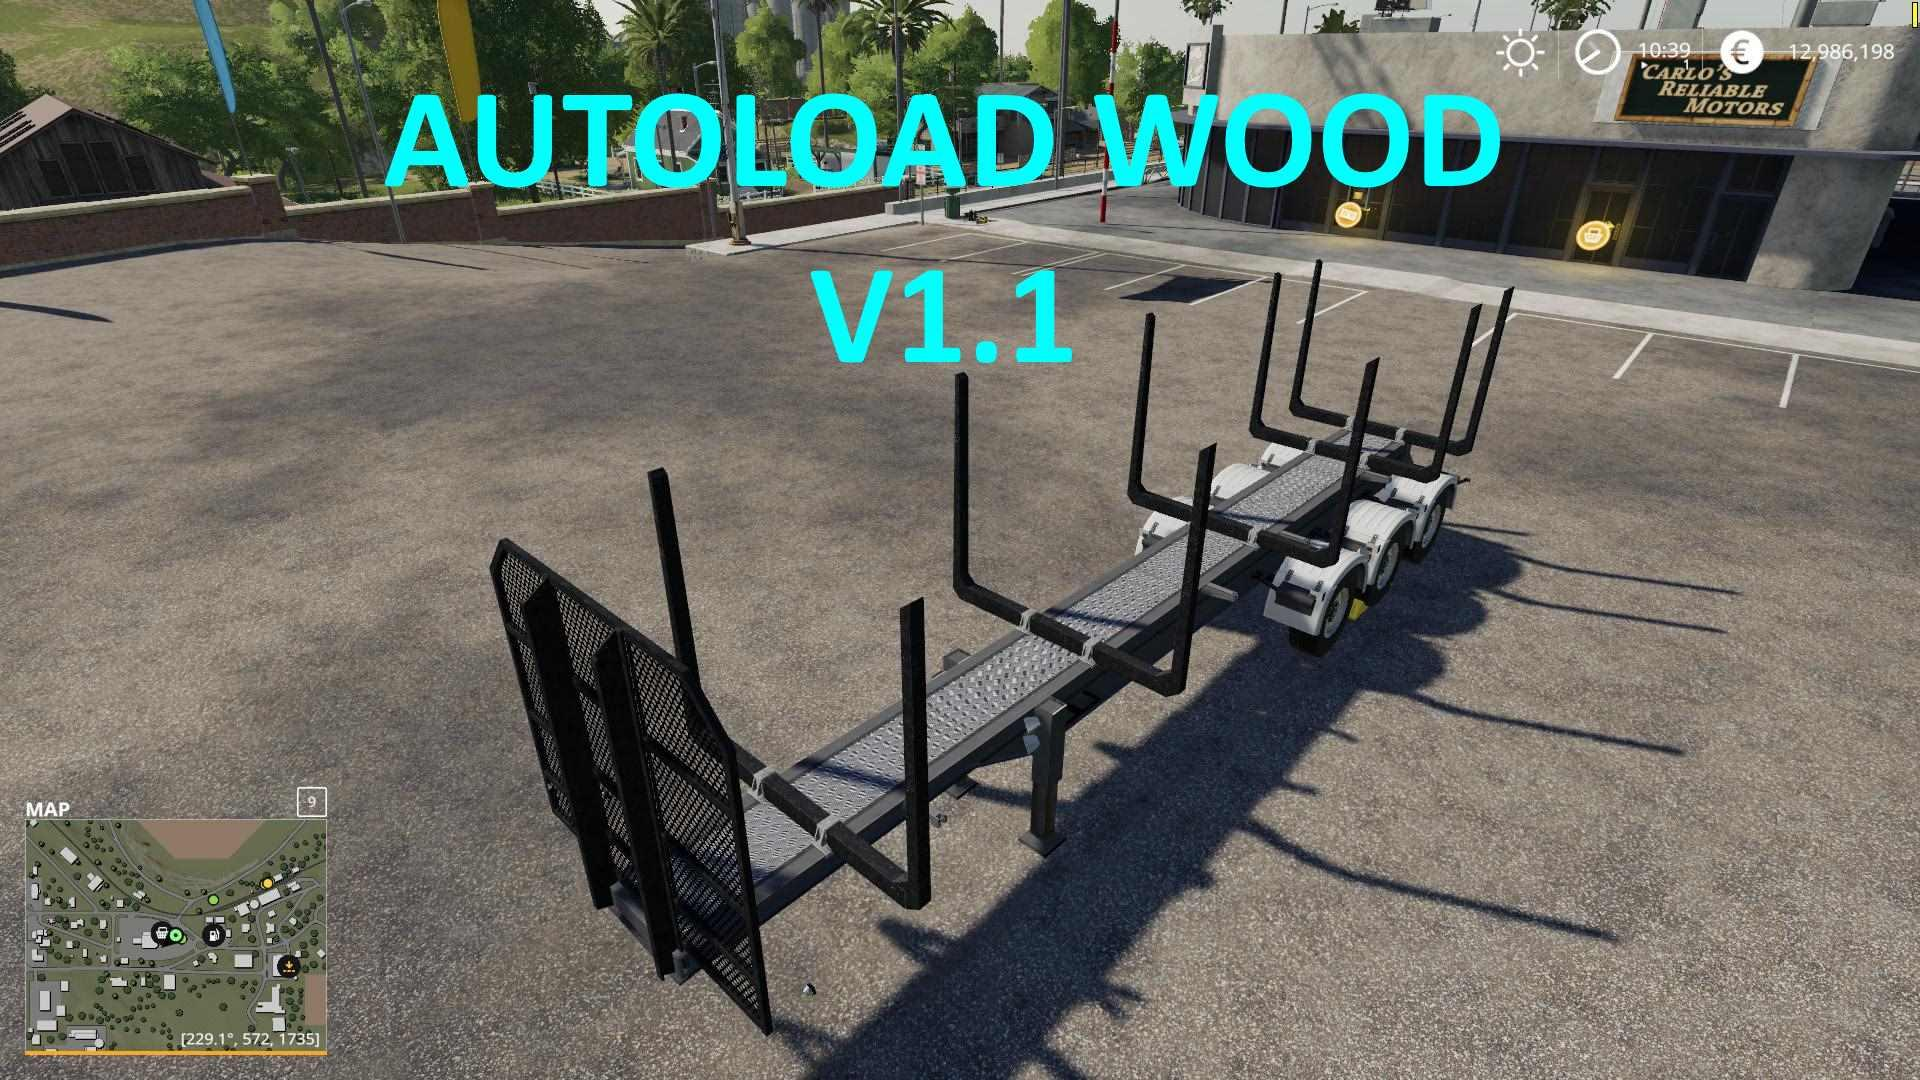 FS19 Mods TIMBER RUNNER WIDE WITH AUTOLOAD WOOD - Ai Cave